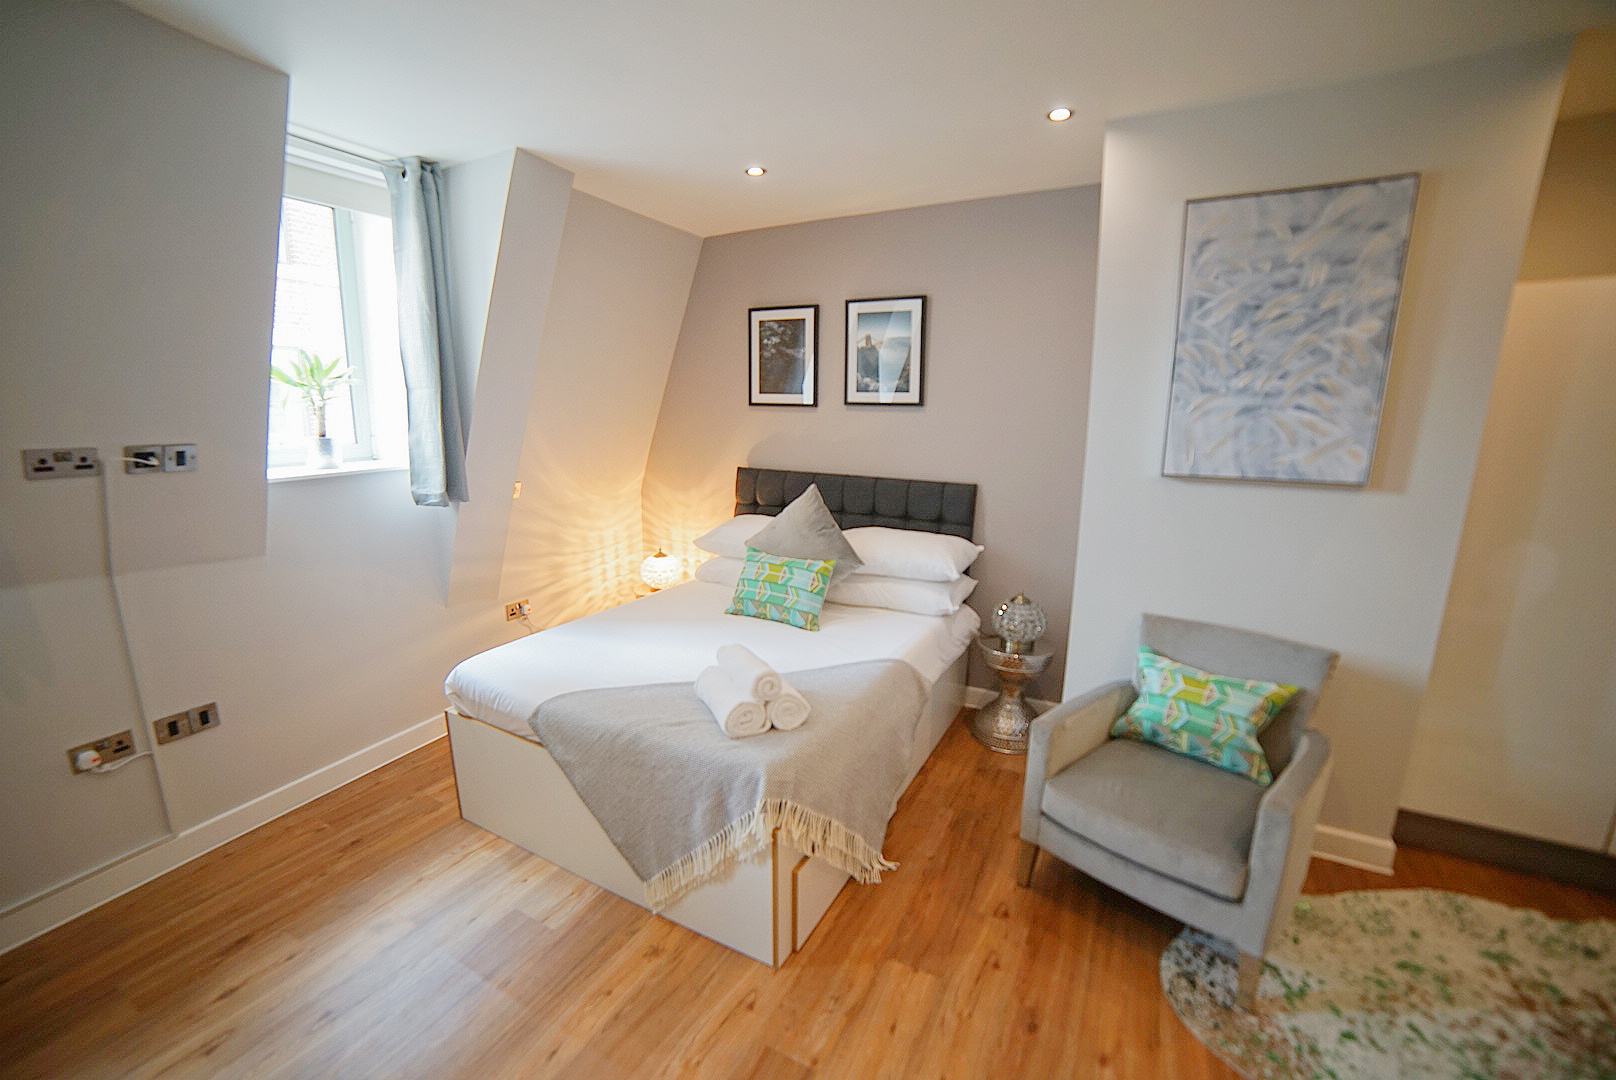 Bed at Prince Street Studios, Centre, Bristol - Citybase Apartments